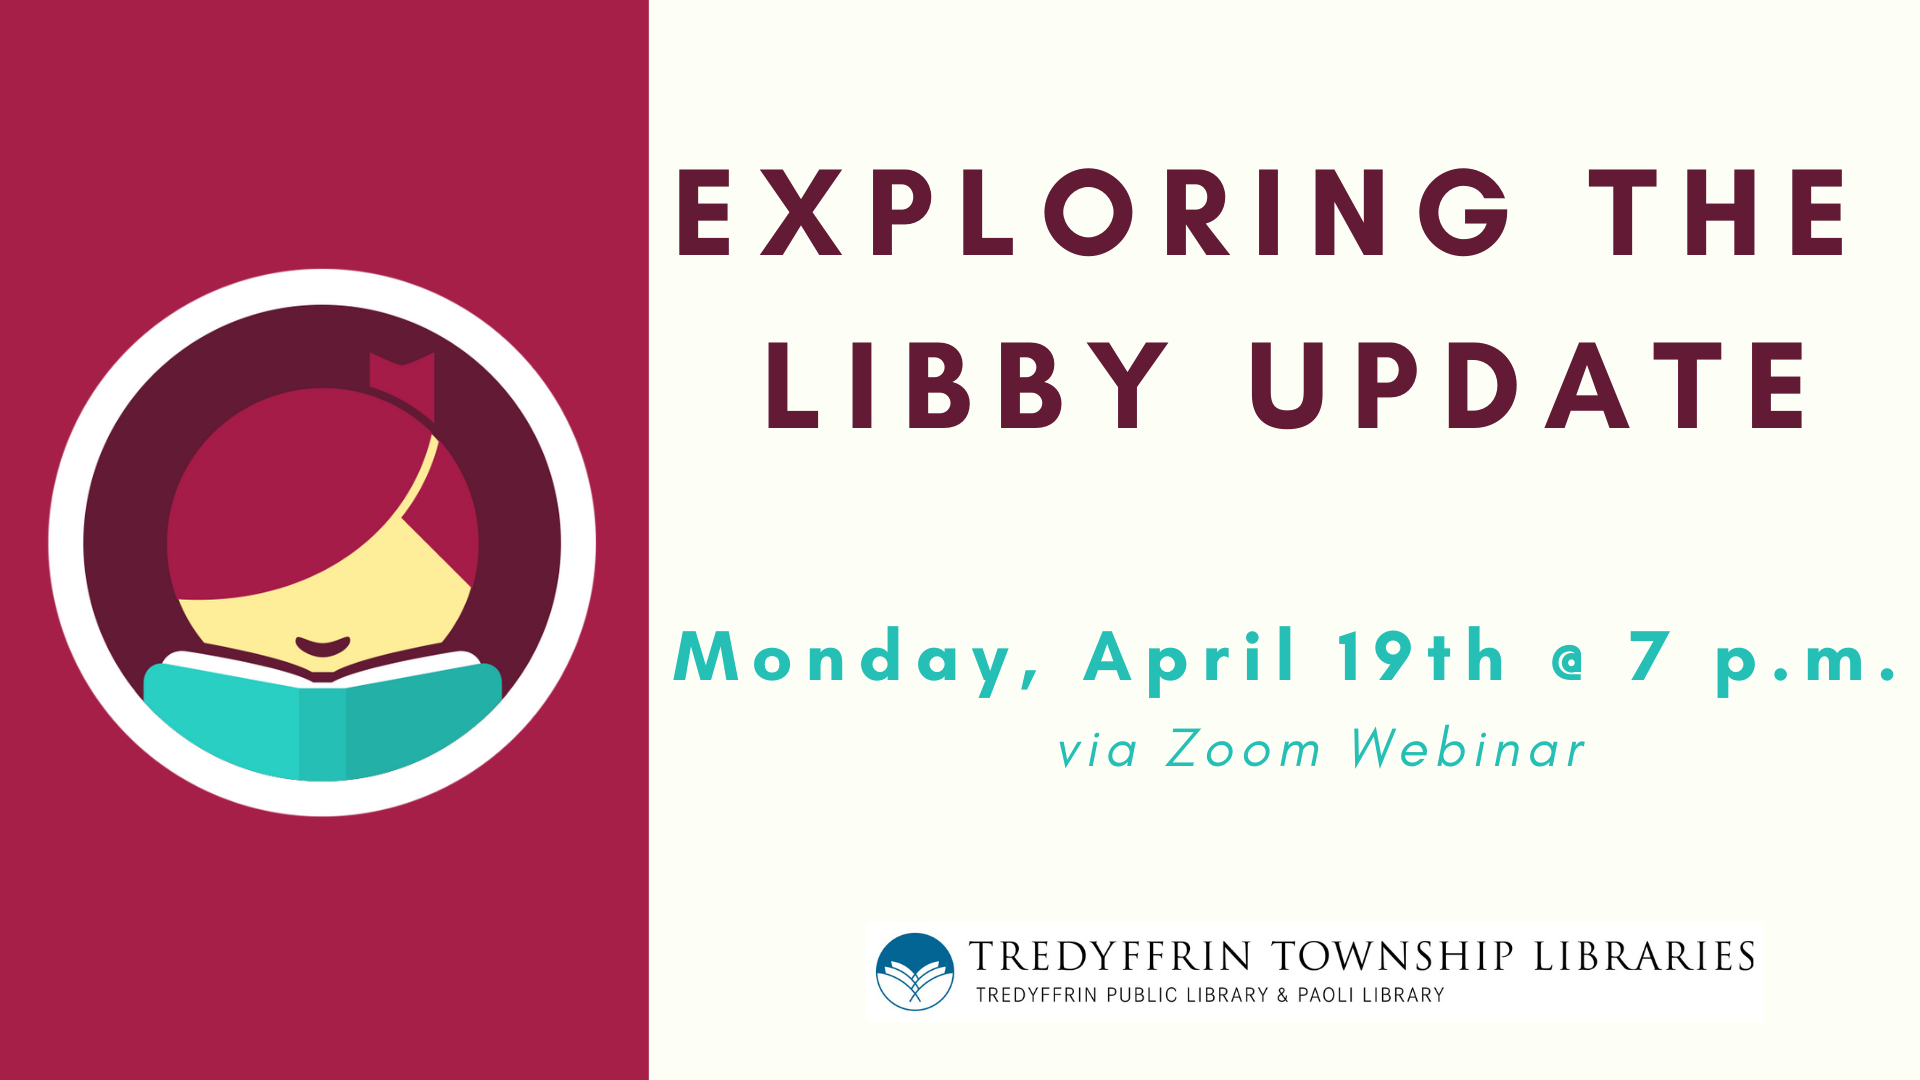 Explore the Libby Update